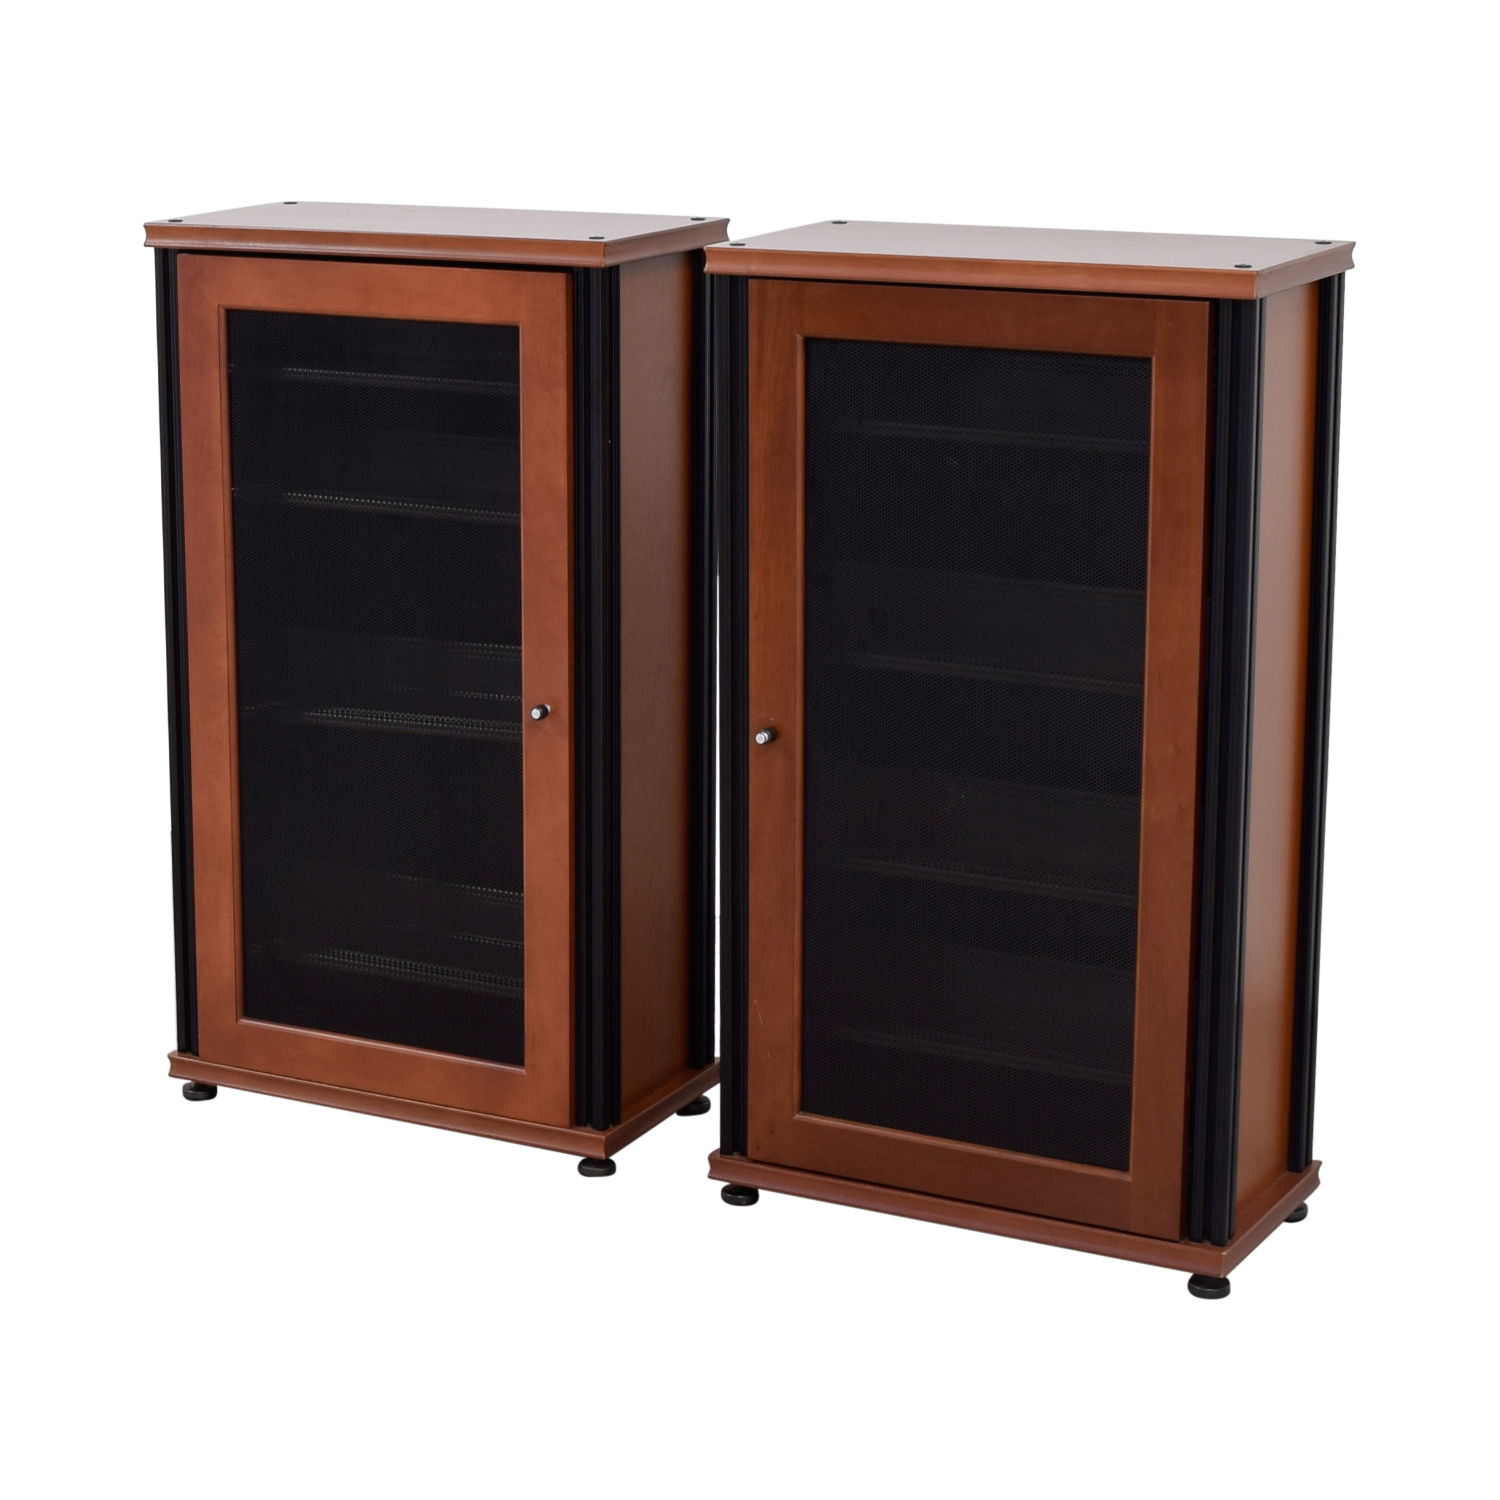 cabinet for sq designs to kit quad synergy hover wall cabinets width mounting salamander zoom